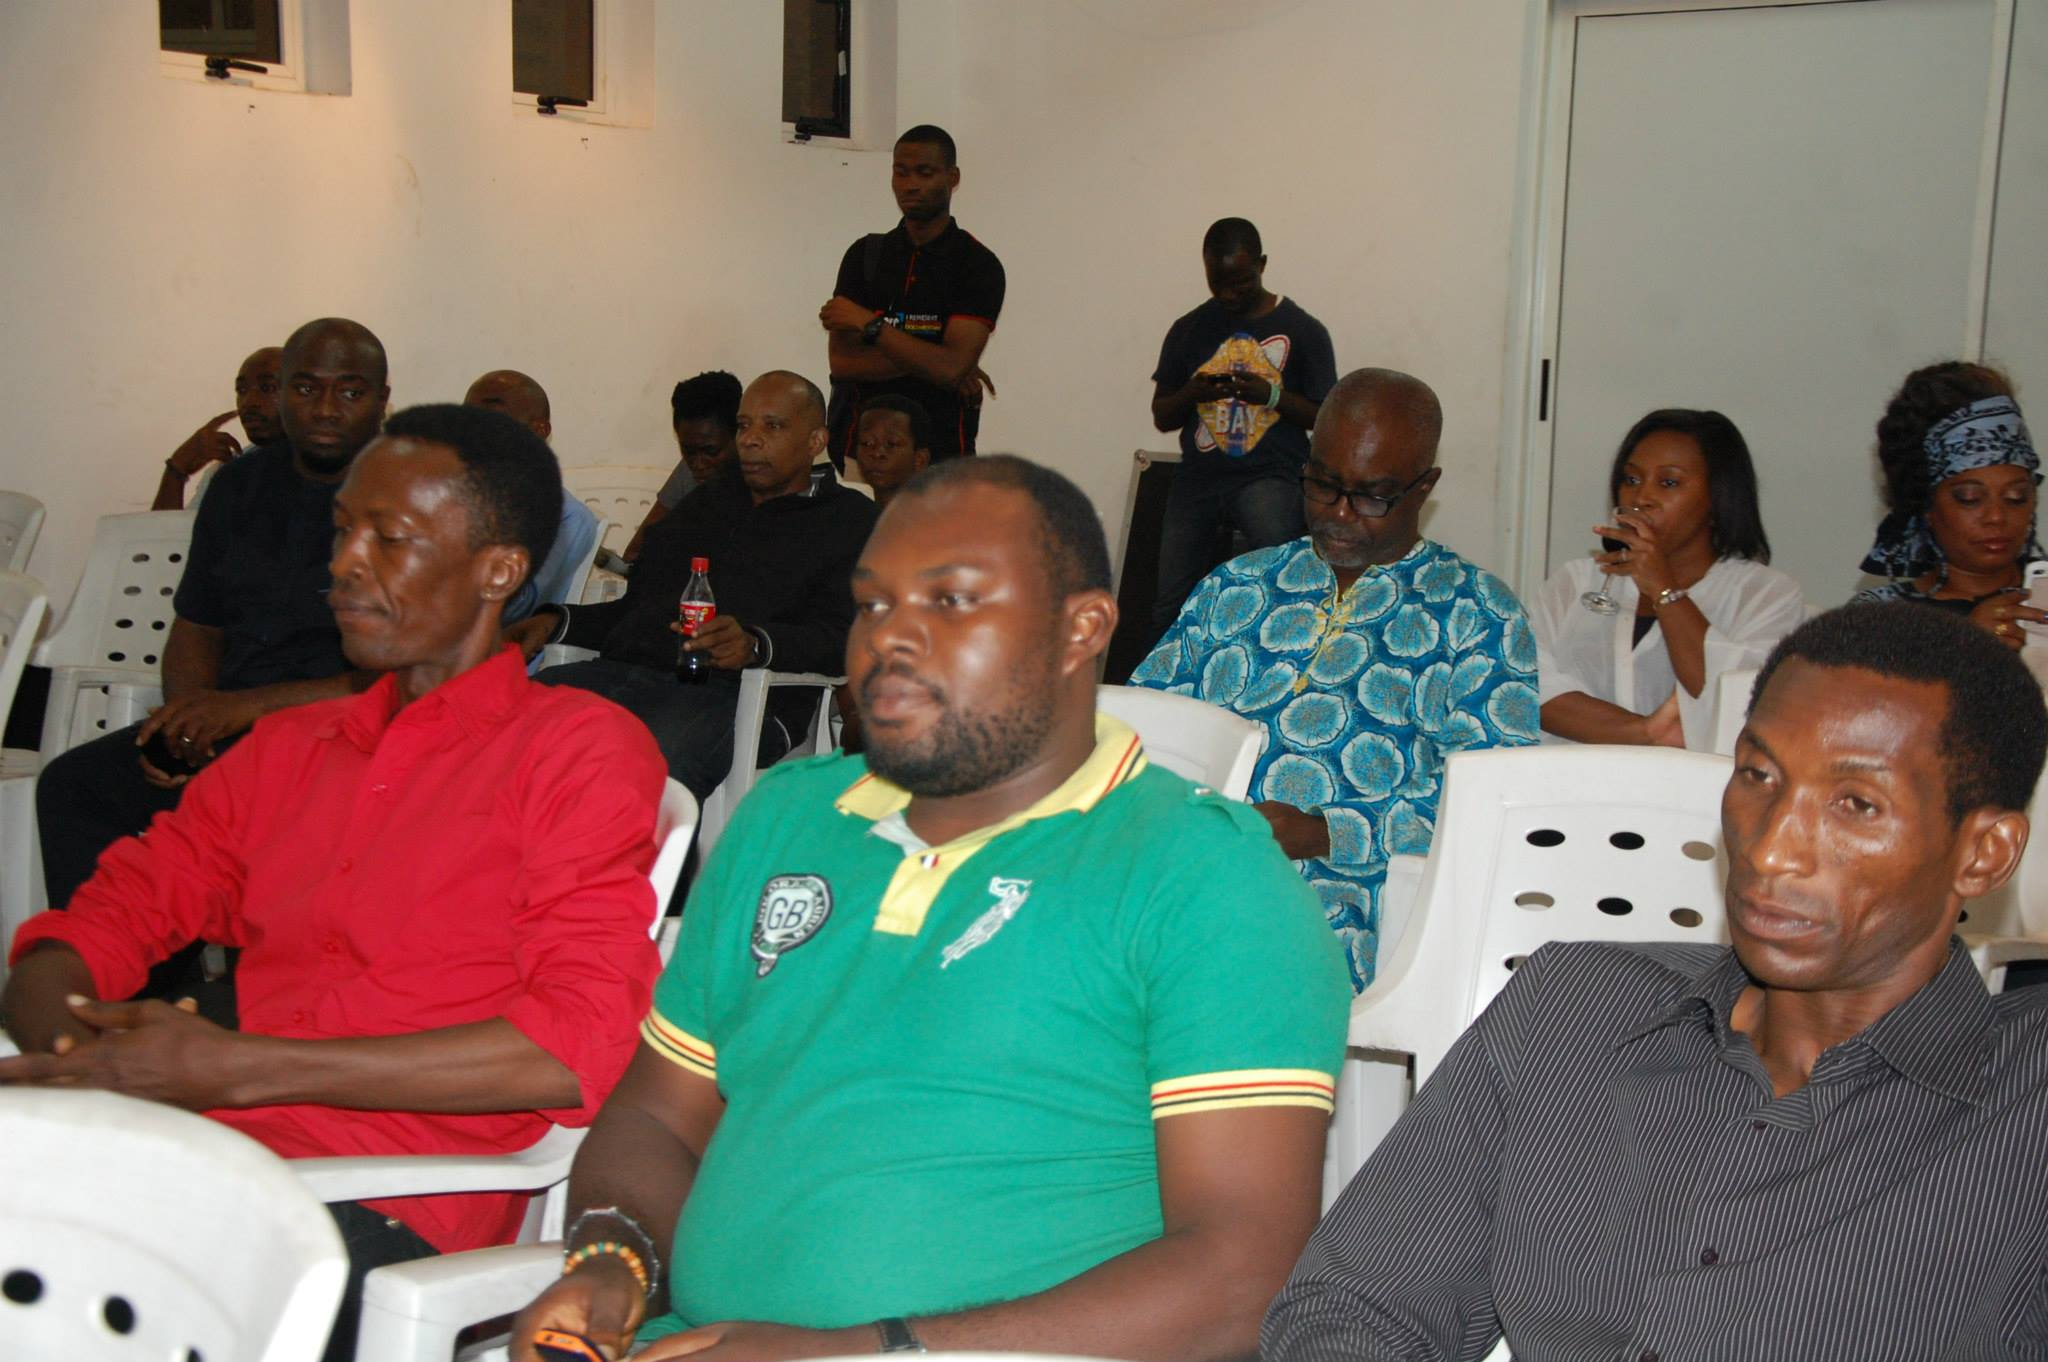 Cross section of guest at the event.